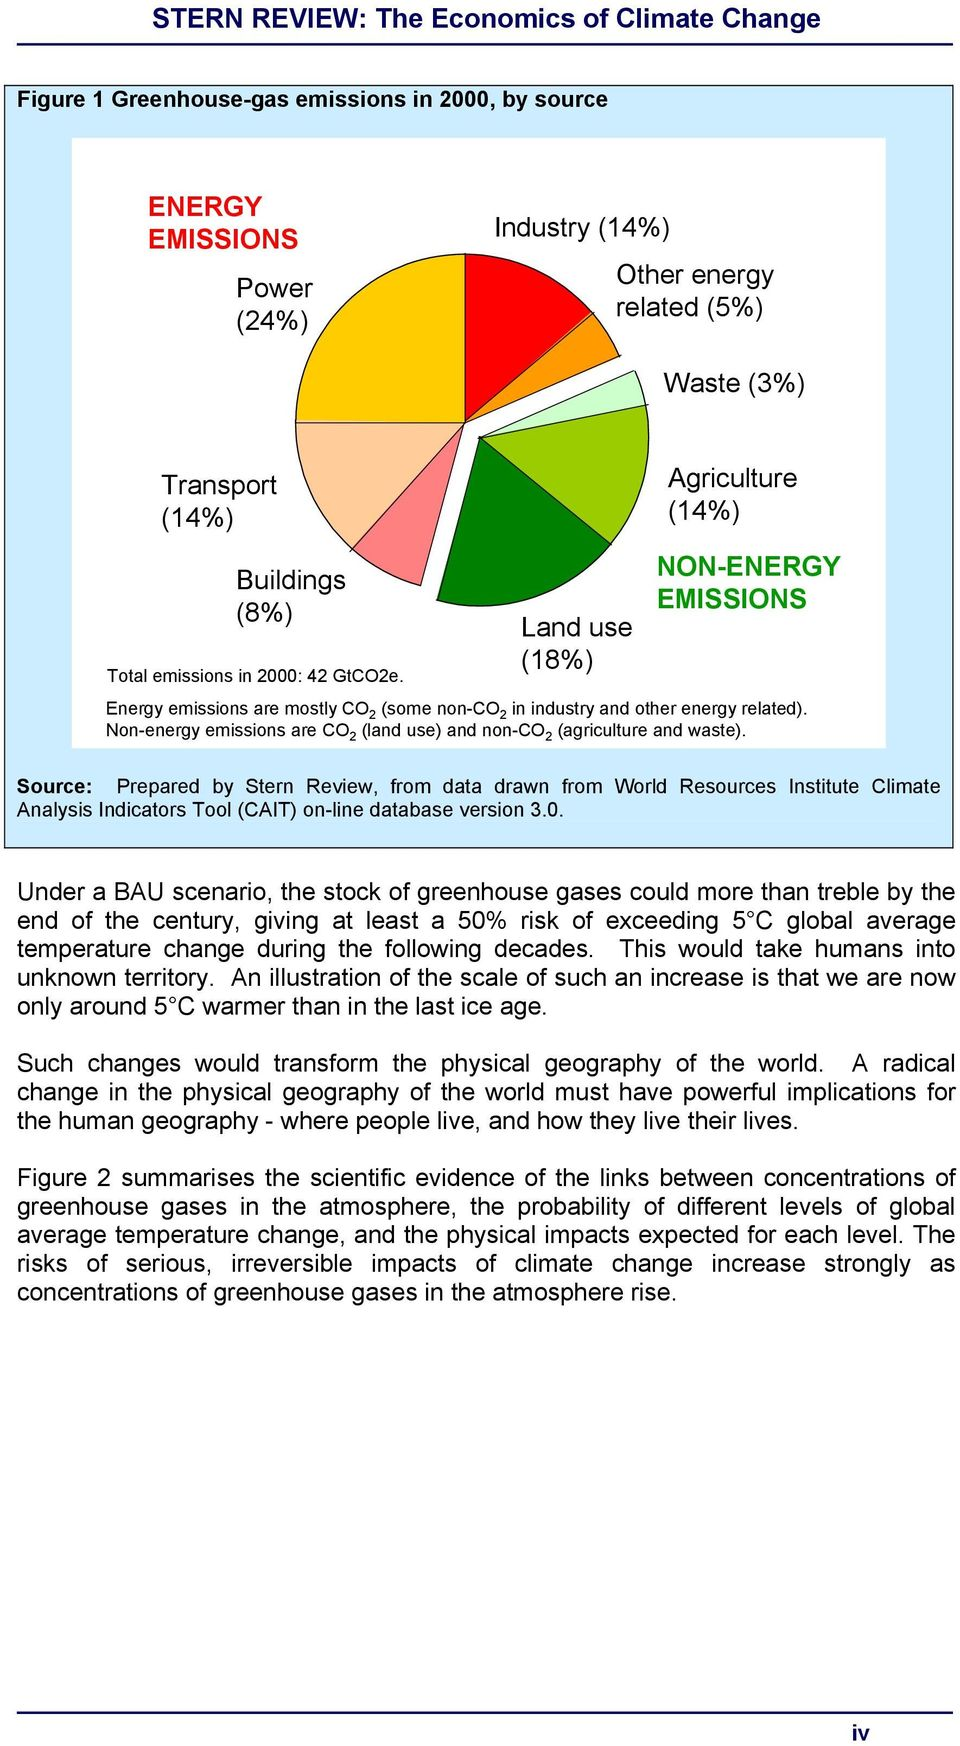 Non-energy emissions are CO 2 (land use) and non-co 2 (agriculture and waste).